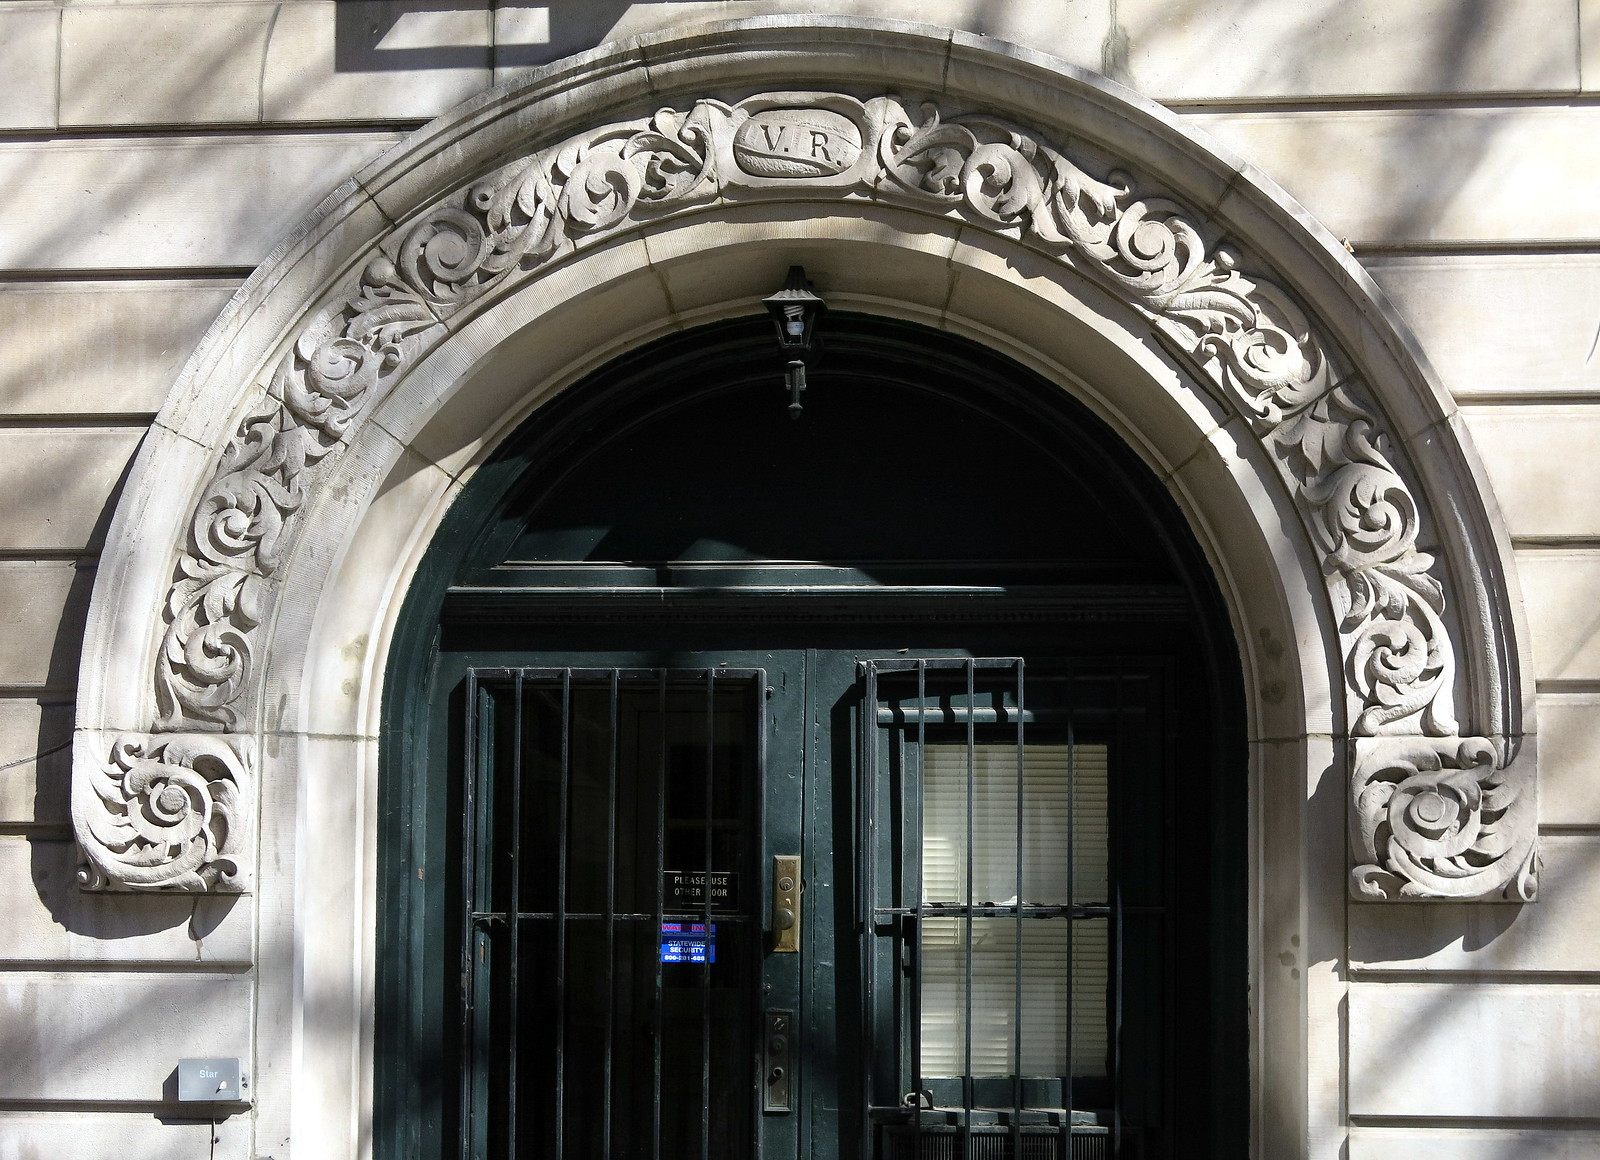 Doorway with a rounded carved pediment, 17-19 East 11th Street (1901), Greenwich Village, Manhattan